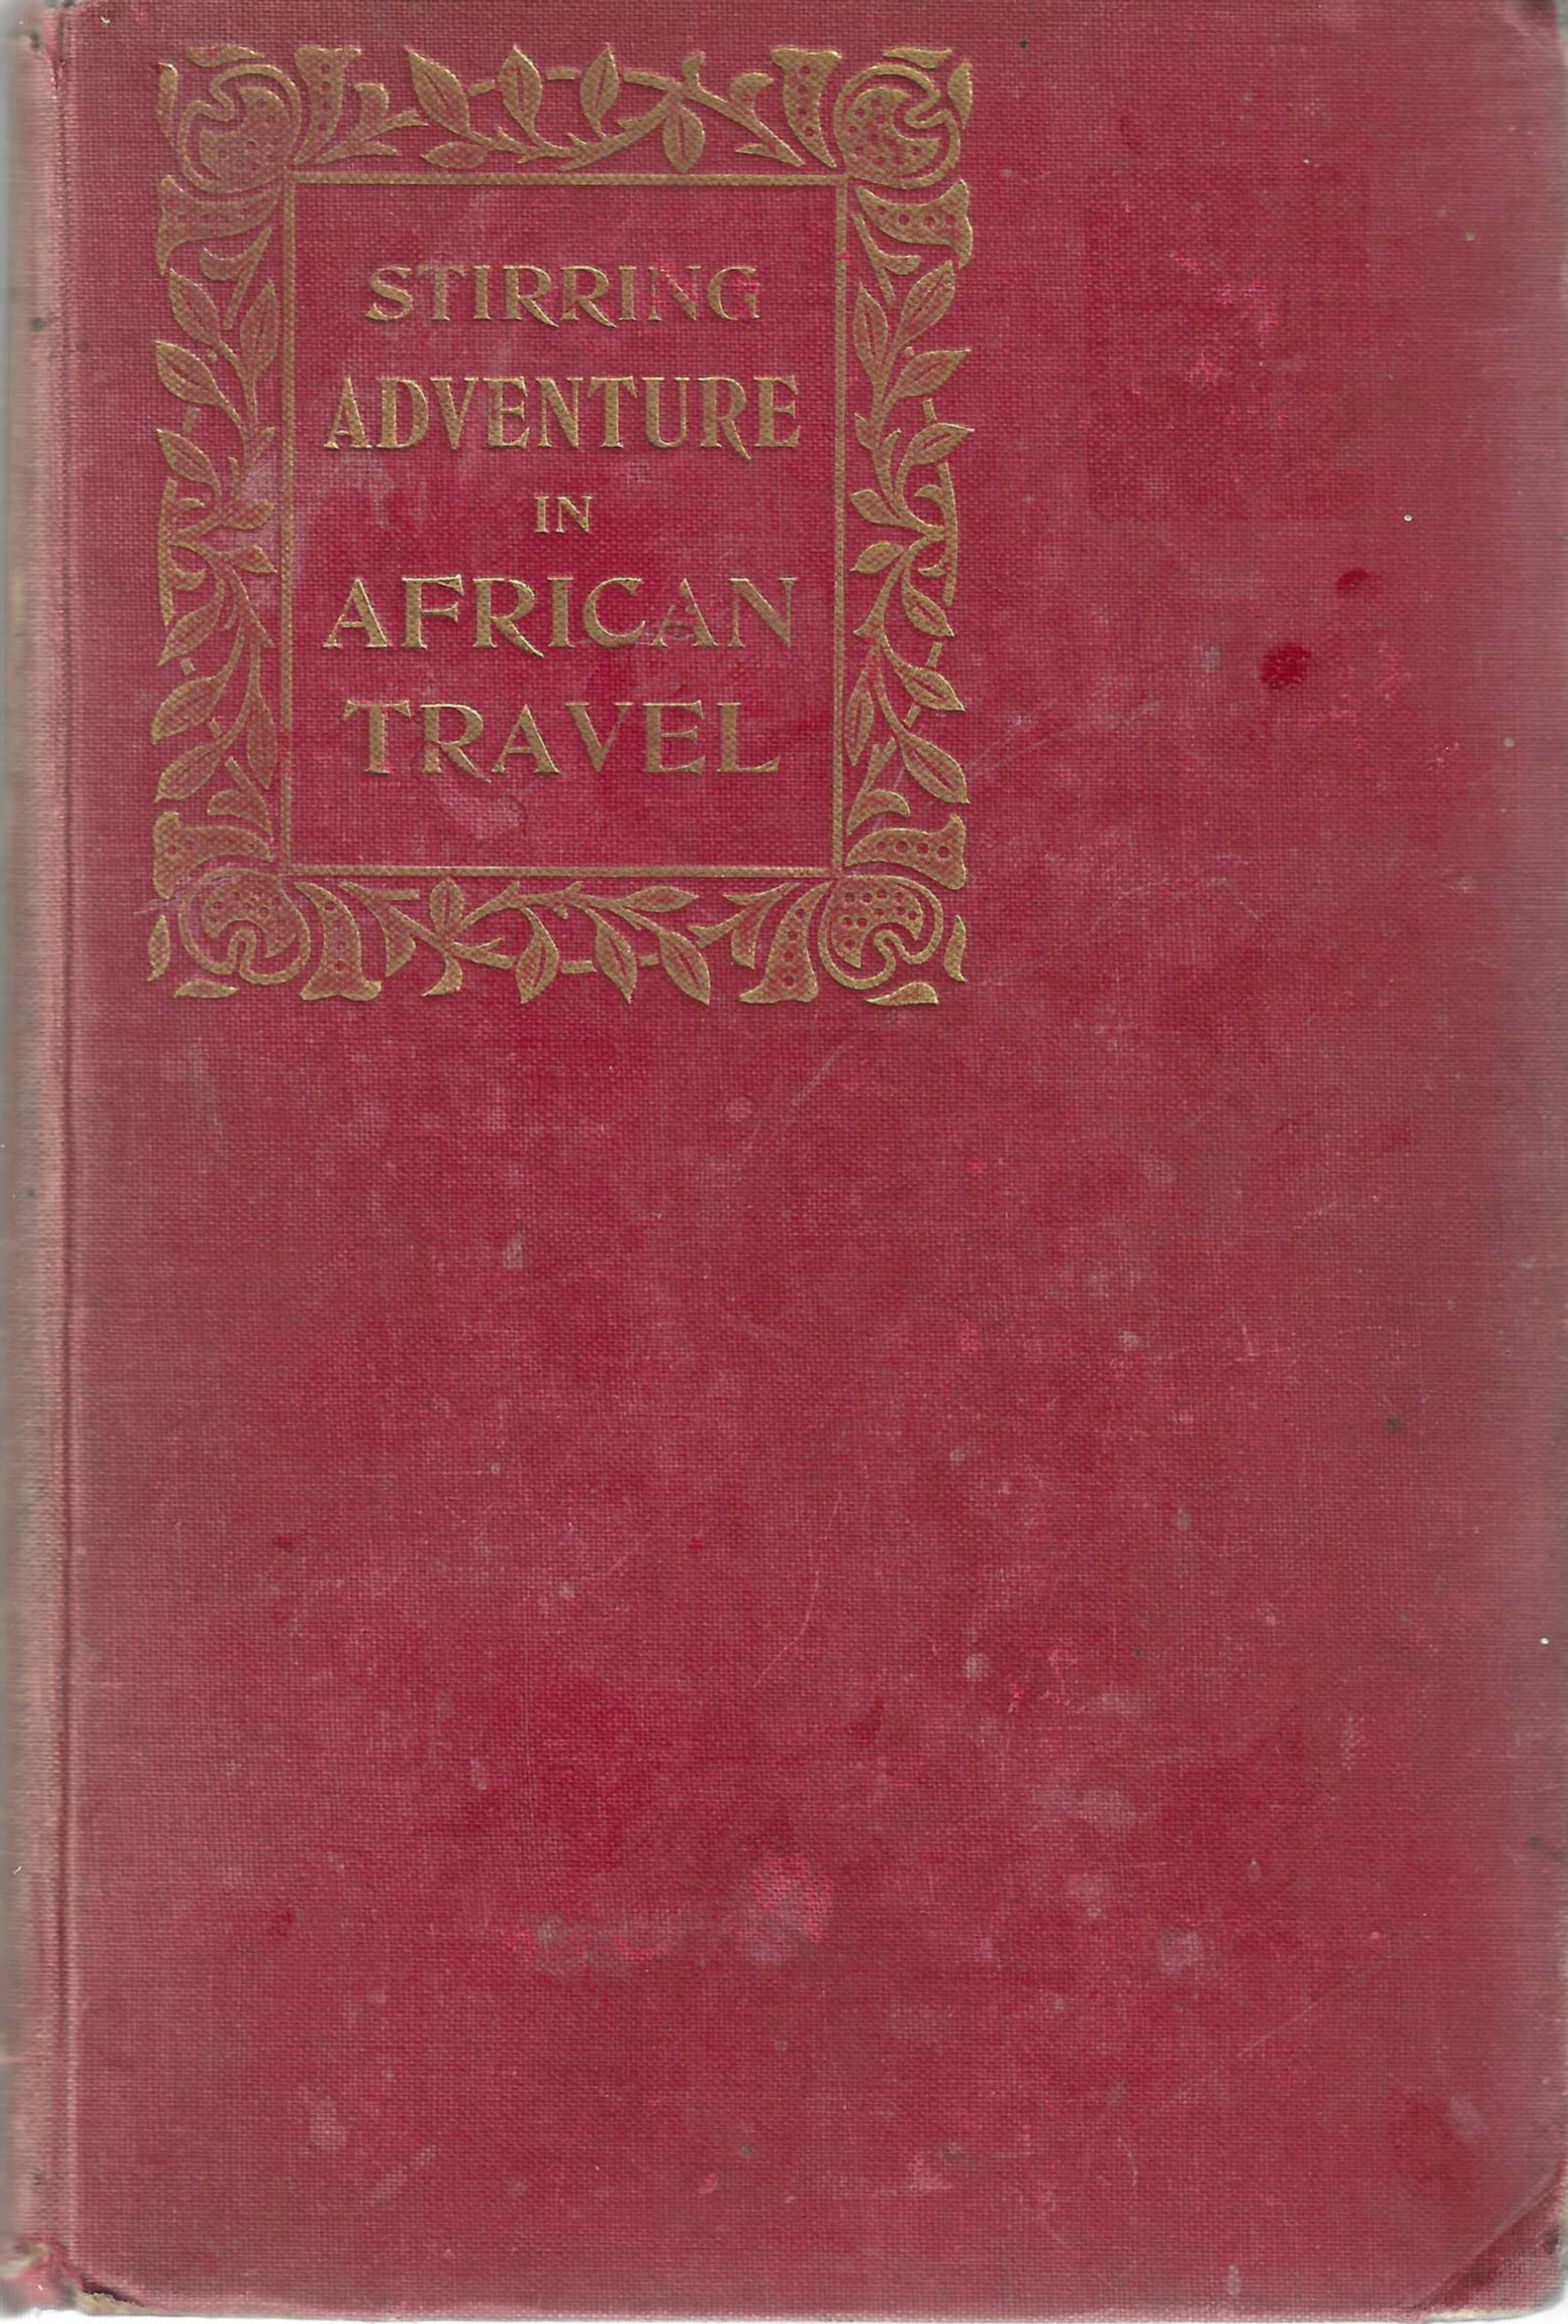 Image for Stirring Adventure in African Travel. Great explorers, hunting exploits, shipwreck, captivity, bombardment.